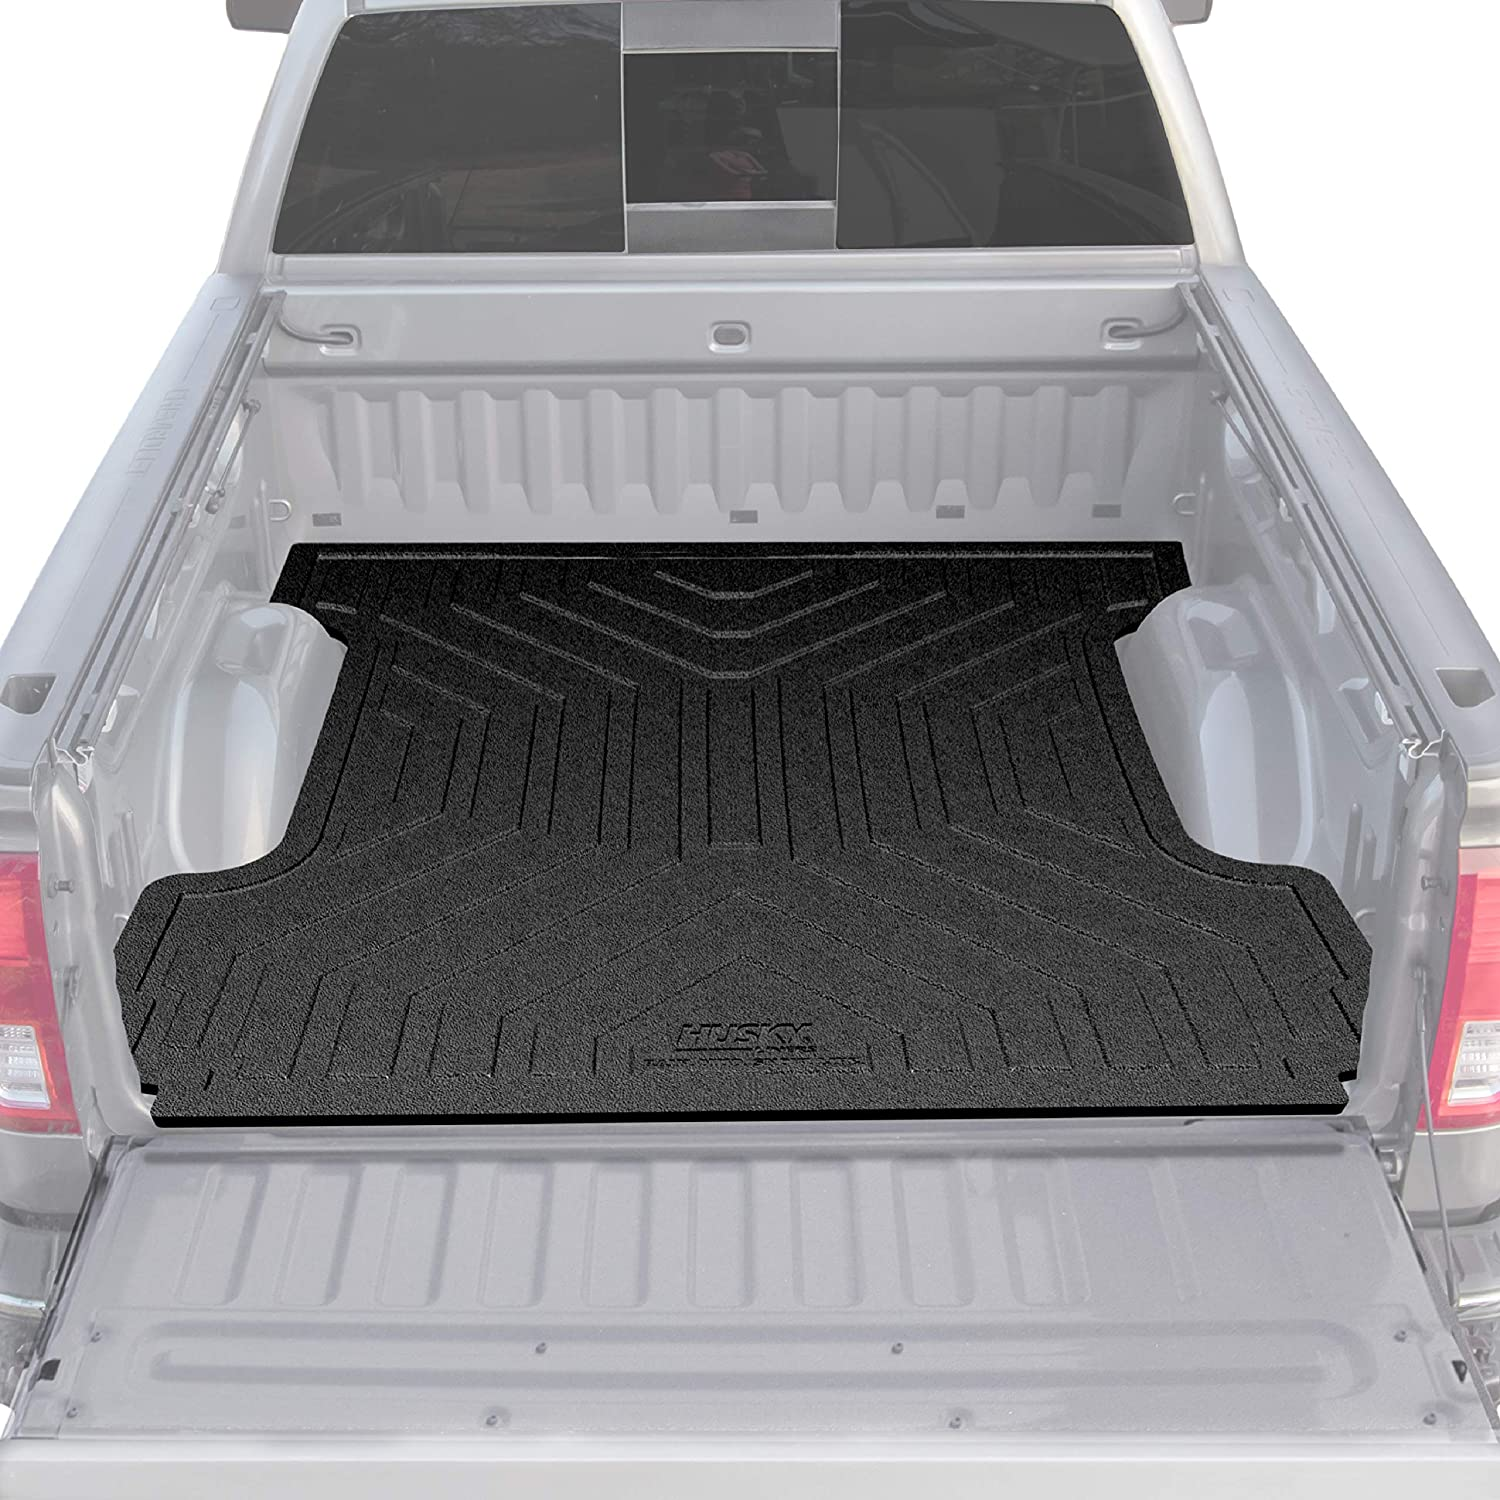 Husky Liners 16010 Black Fits 2017-2019 Ford F-250 Super Duty 6.5 Bed 2017-2019 Ford F-350 Super Duty 6.5 Bed Heavy Duty Bed Mat